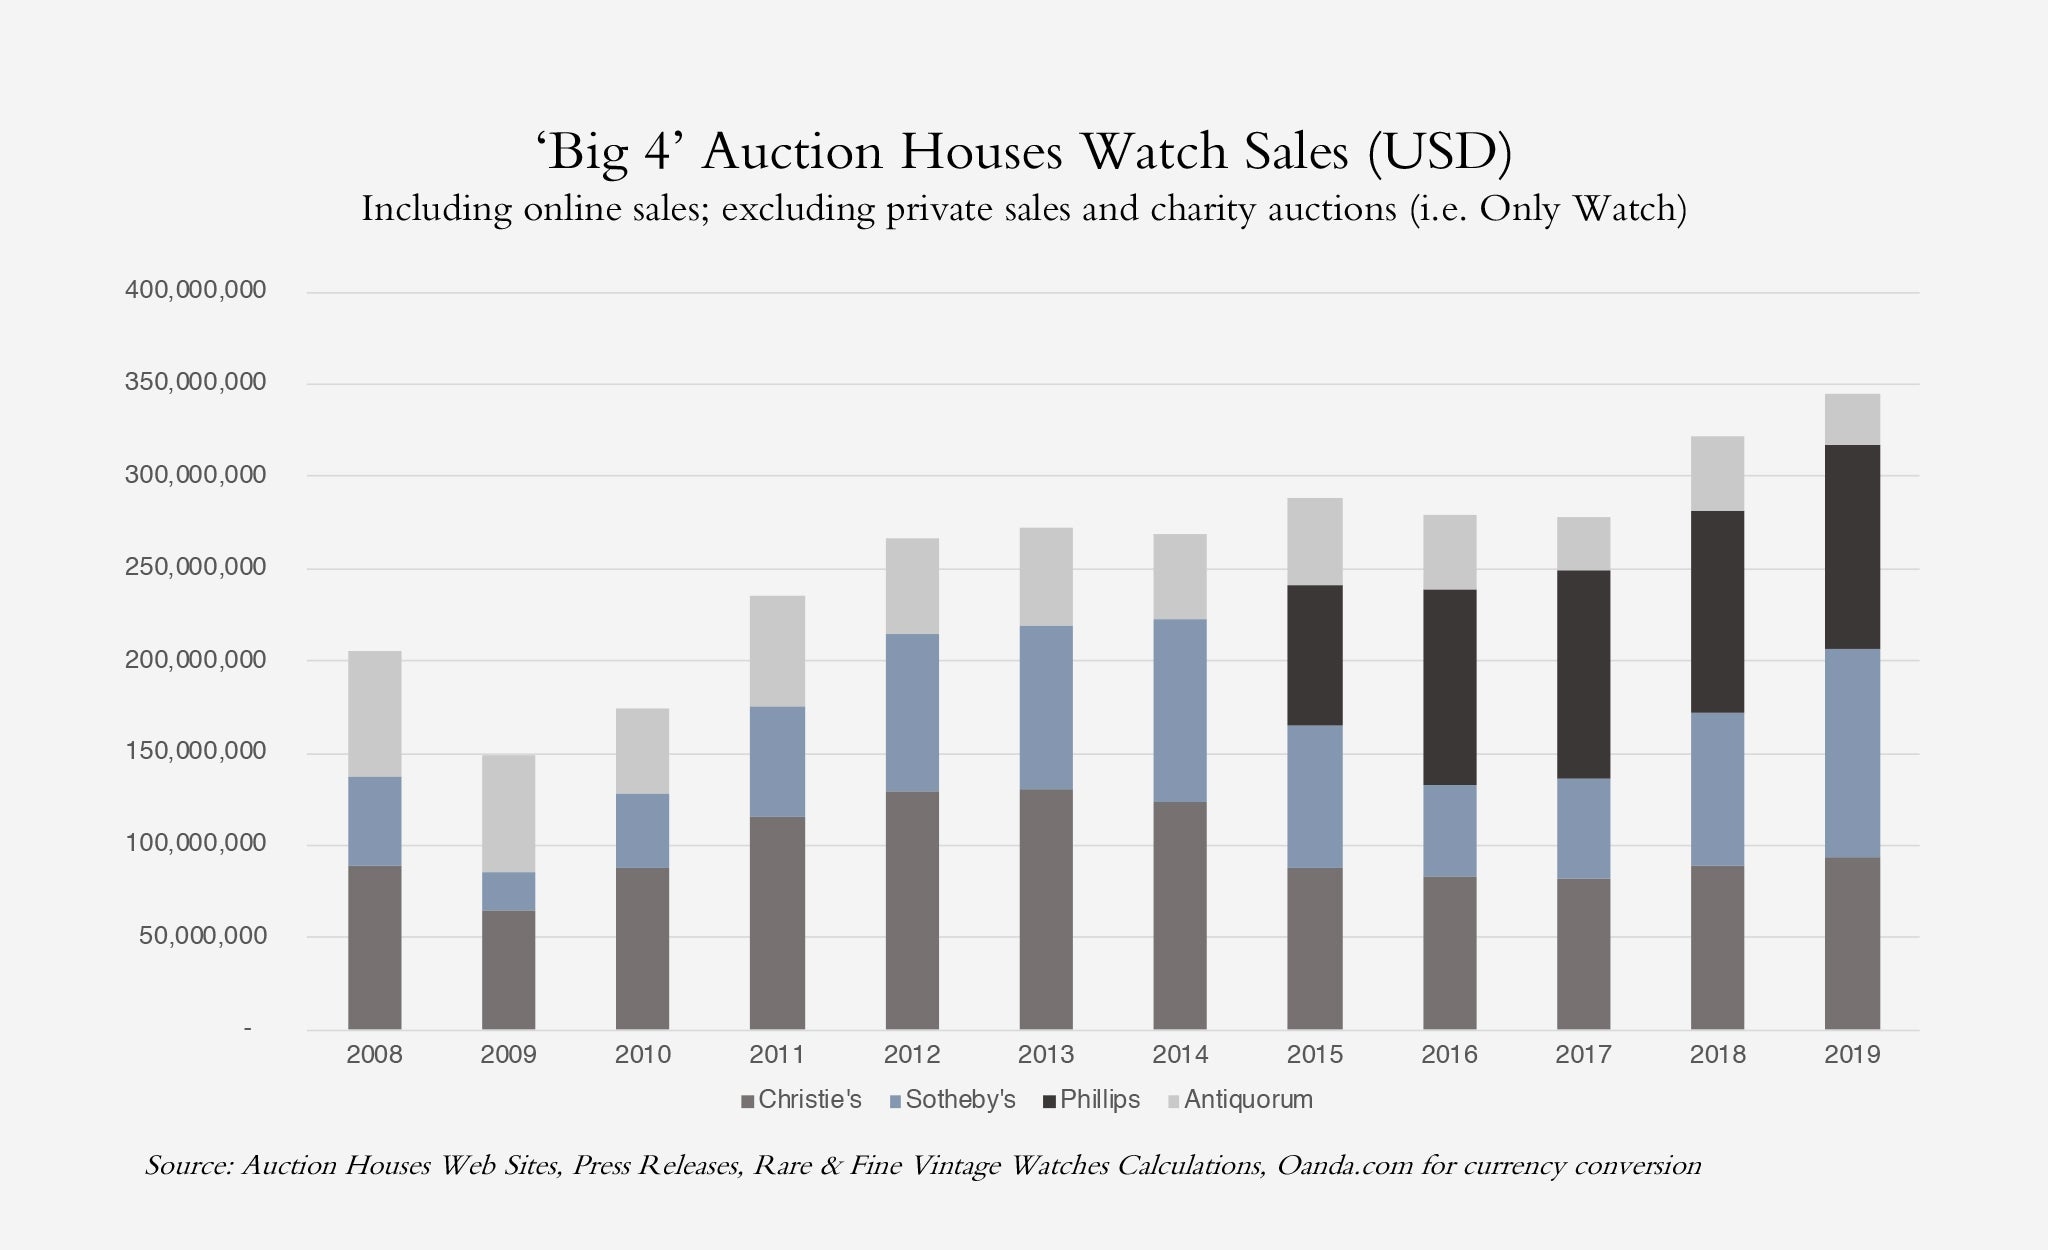 A bar graph showing the watch auction results for the big four auction houses Christie's, Phillips, SOtheby's and Antiquorum from 2008 to 2019